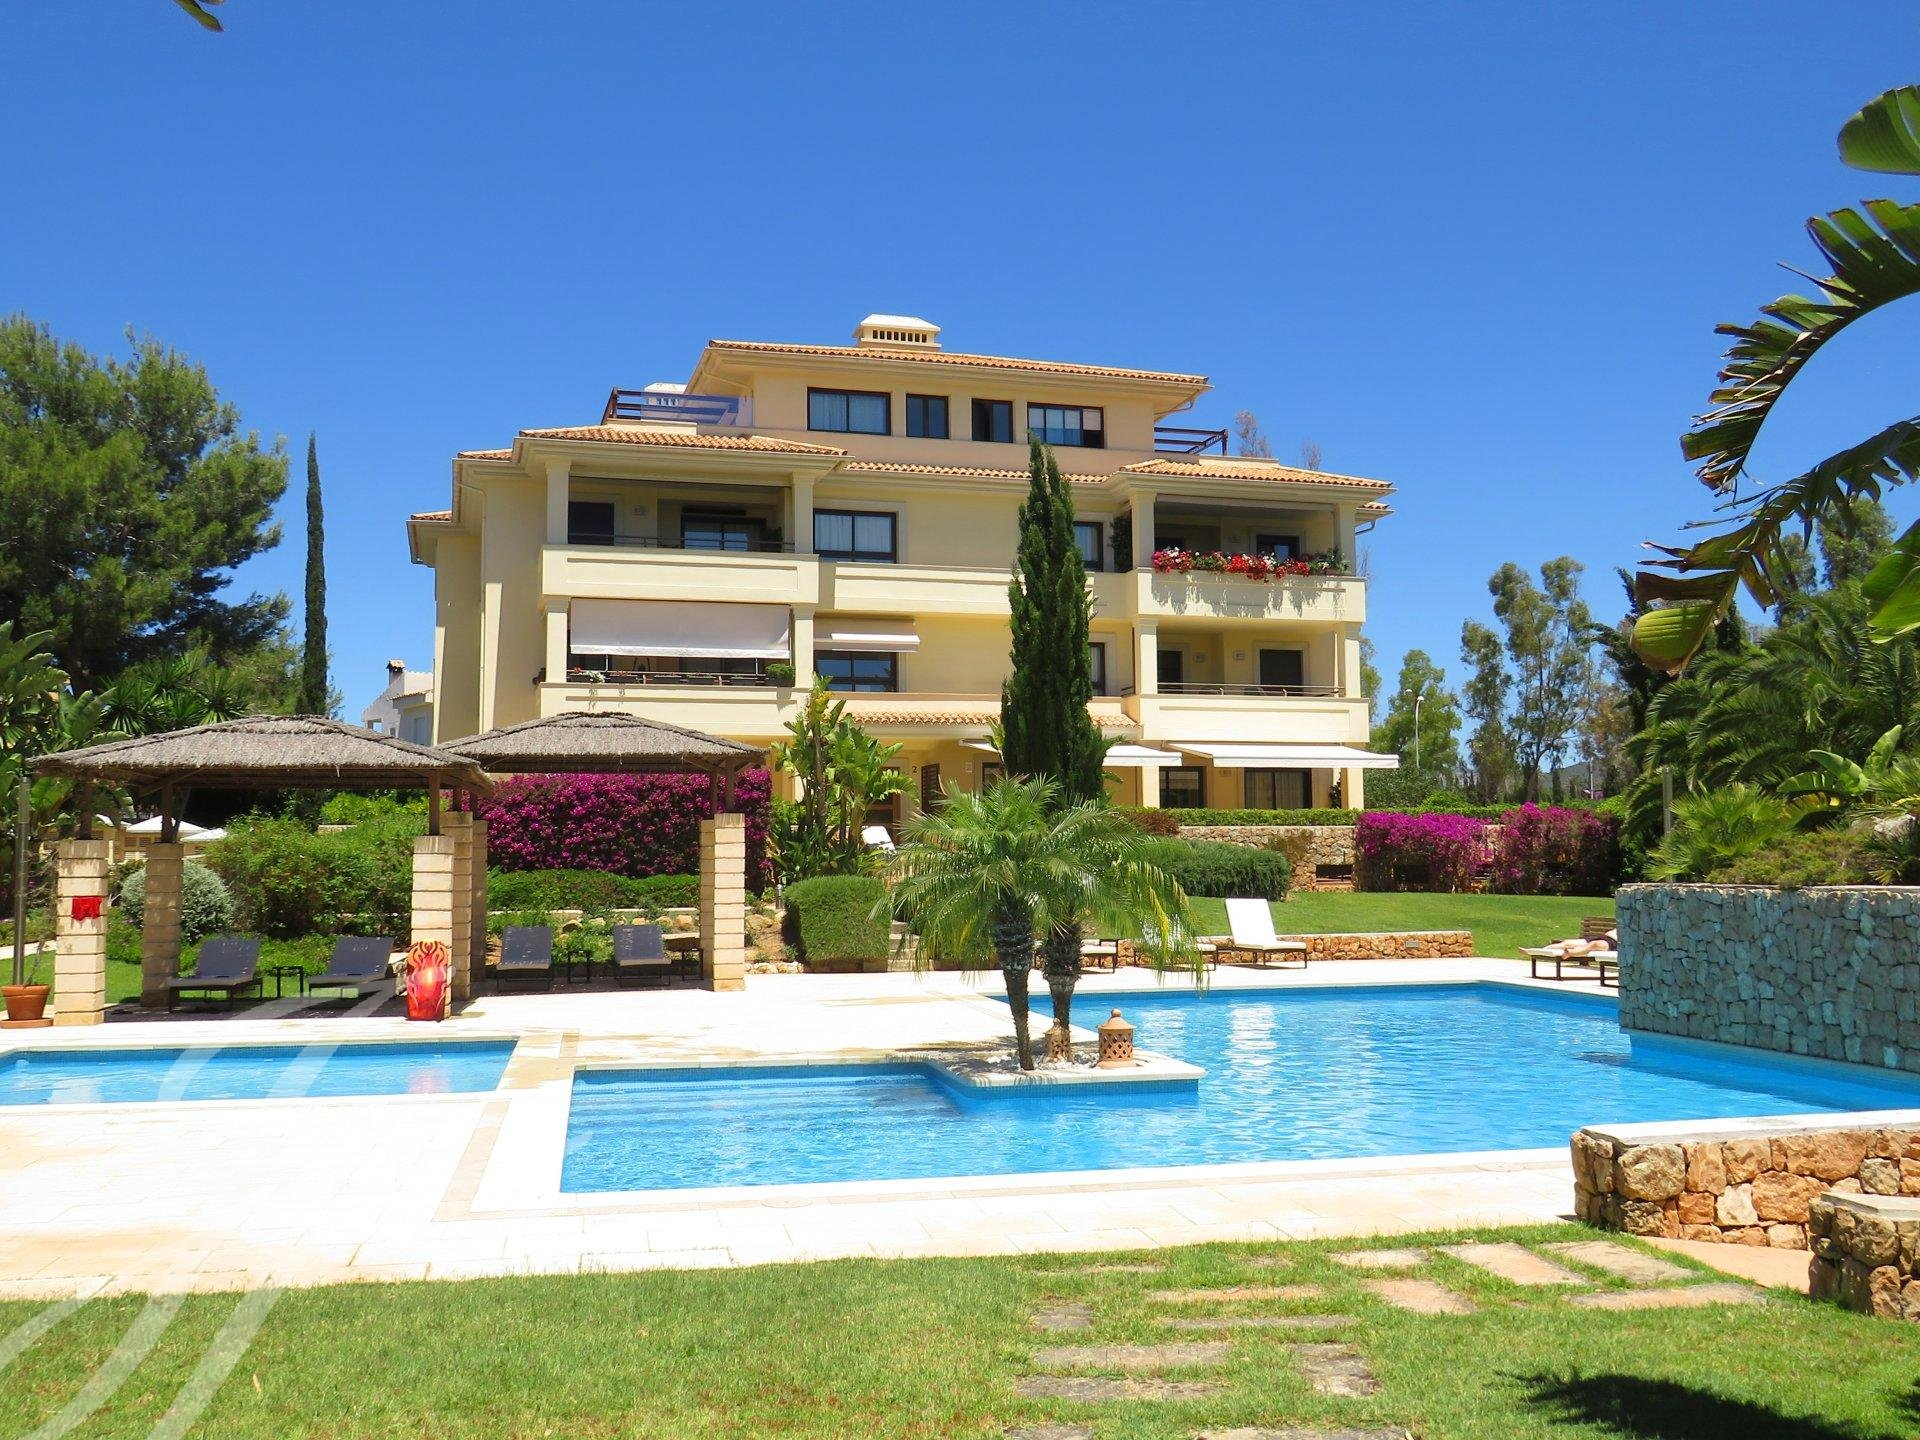 Ad Sale Apartment Santa Ponsa (07180) ref:V0343SP